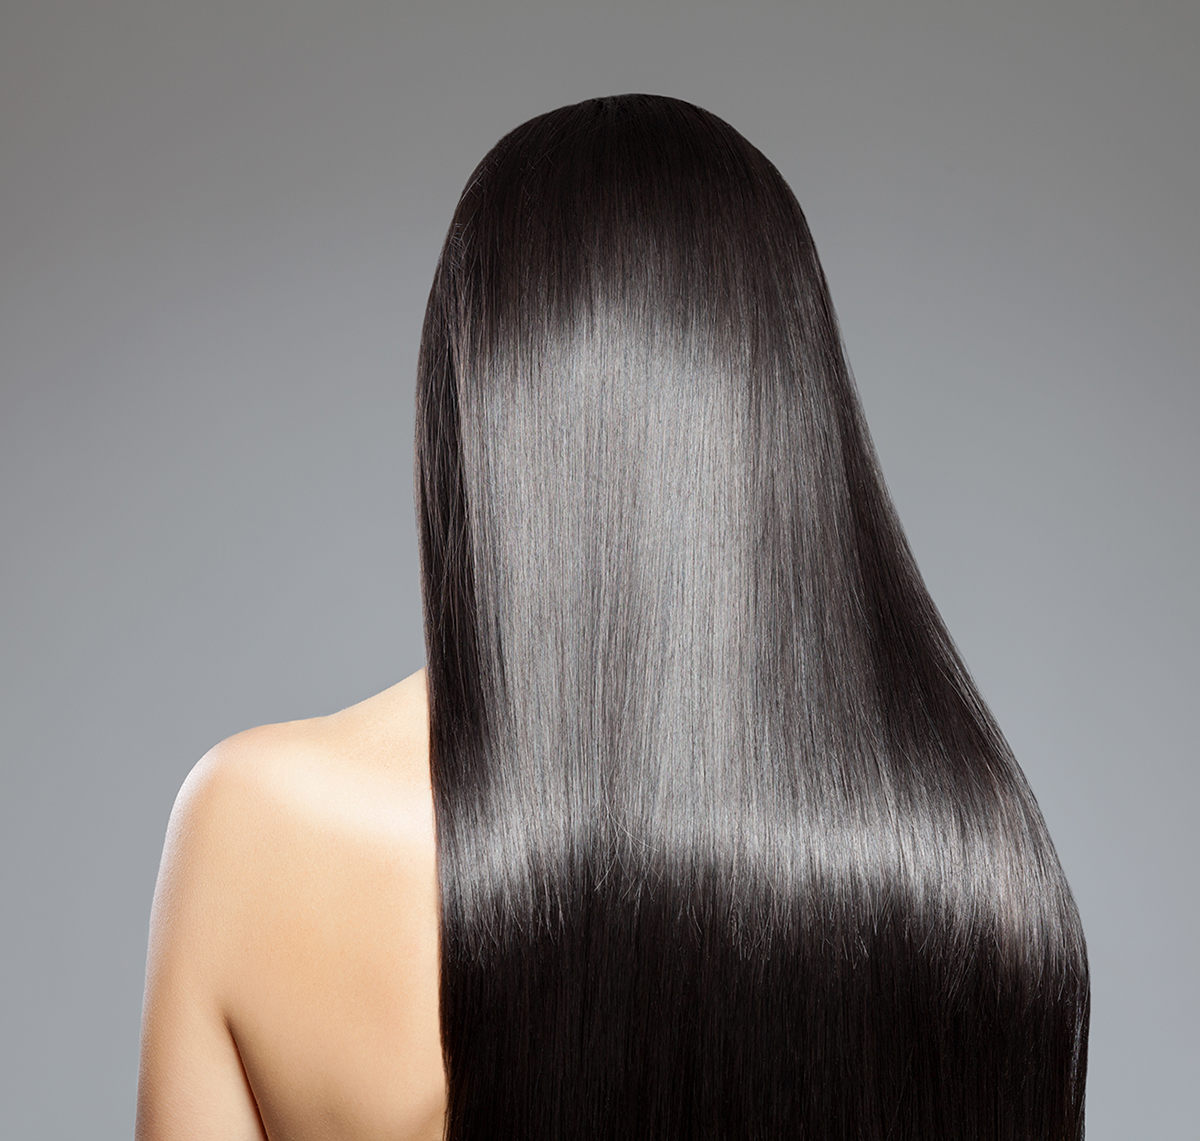 Keratin express blowout model with straight hair